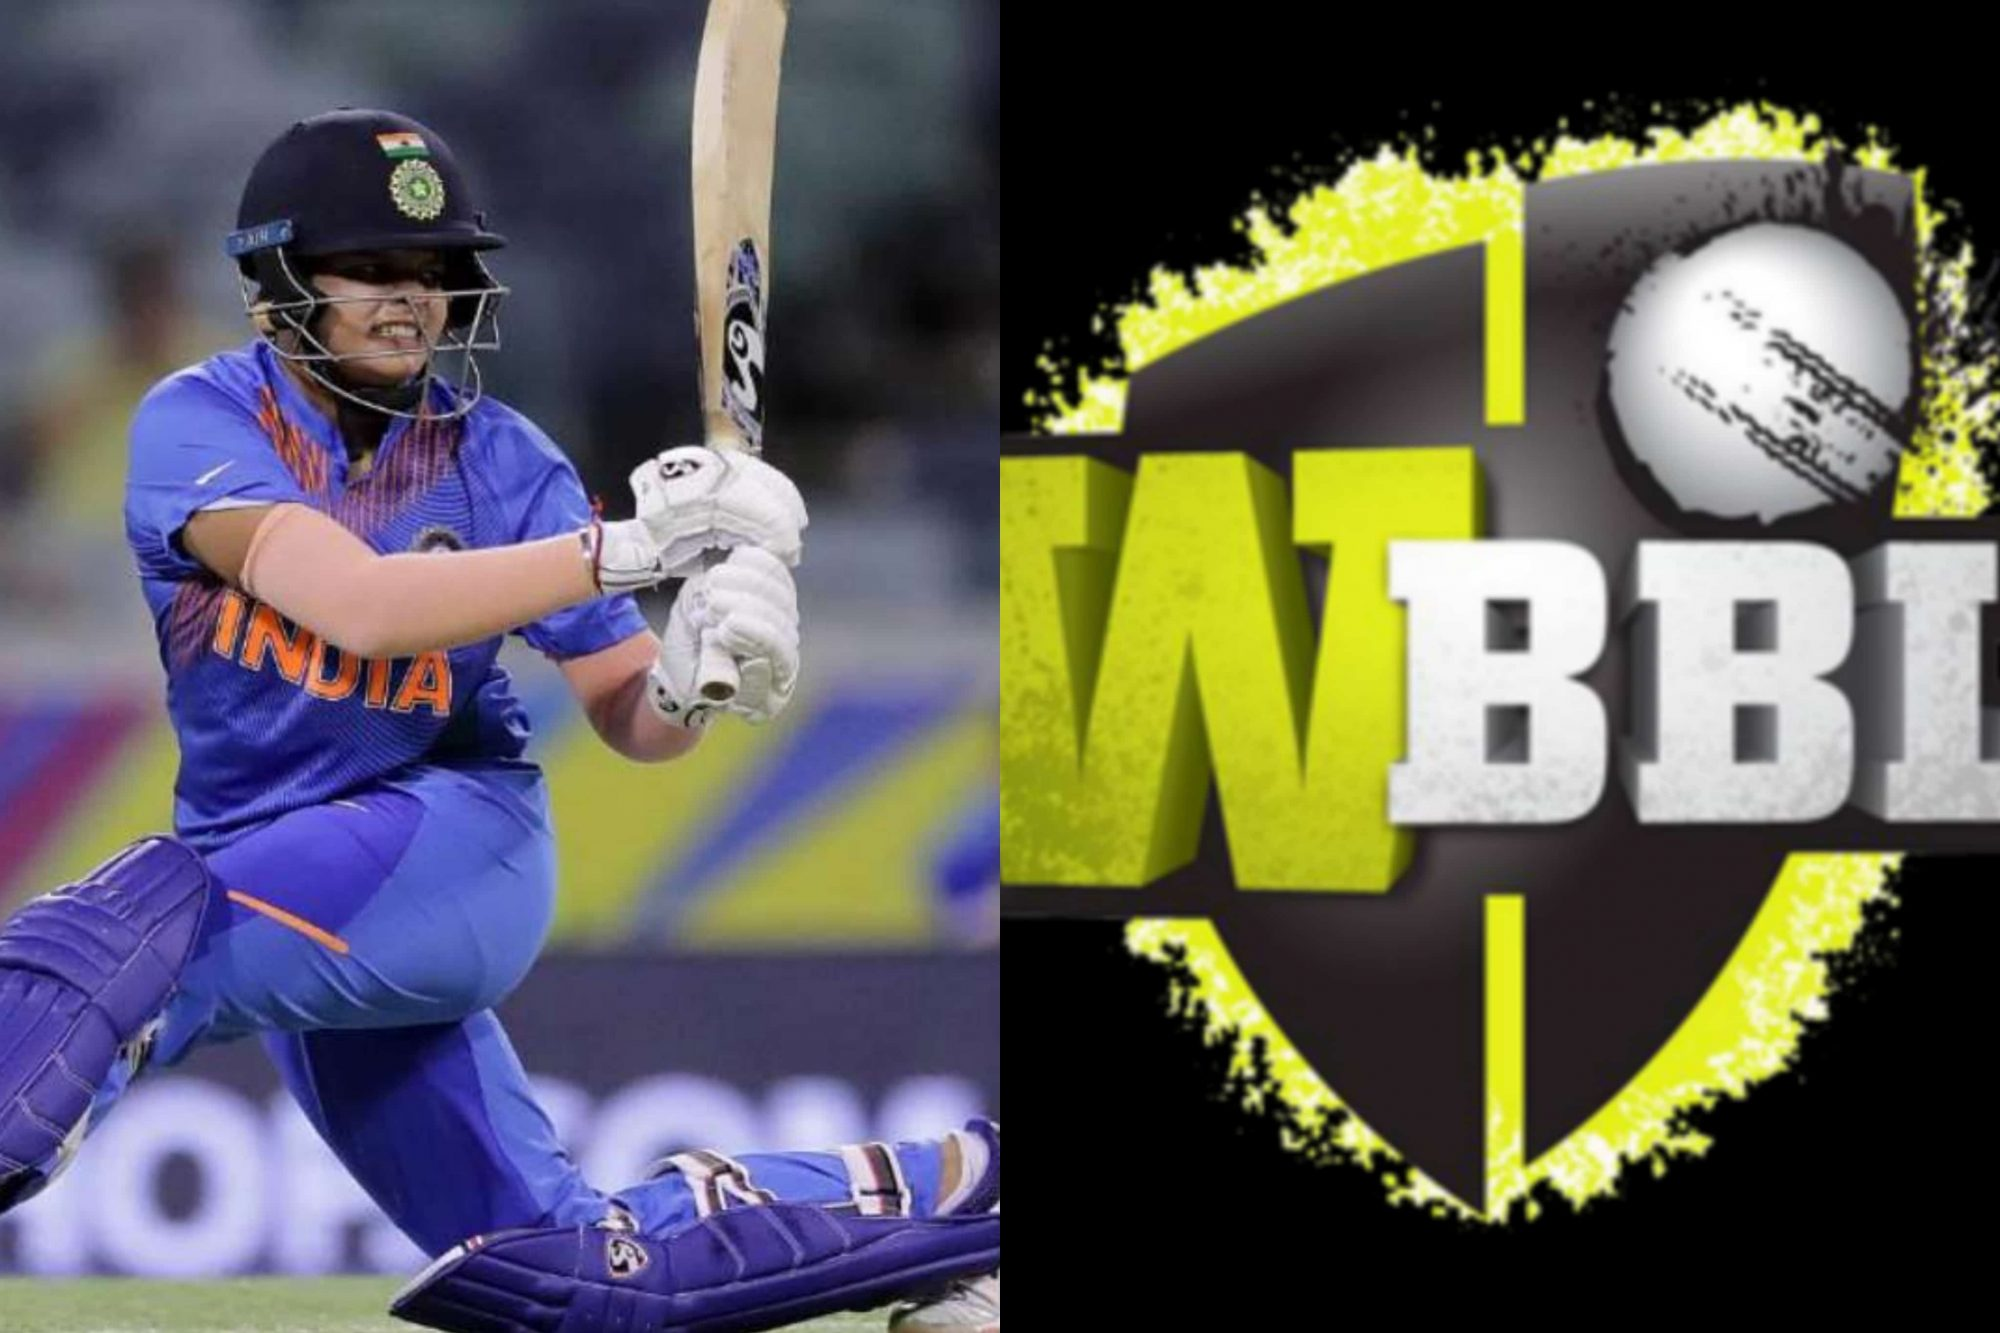 Shafali Verma Likely To Feature In Women's BBL 2021 For Sydney Franchise - Reports